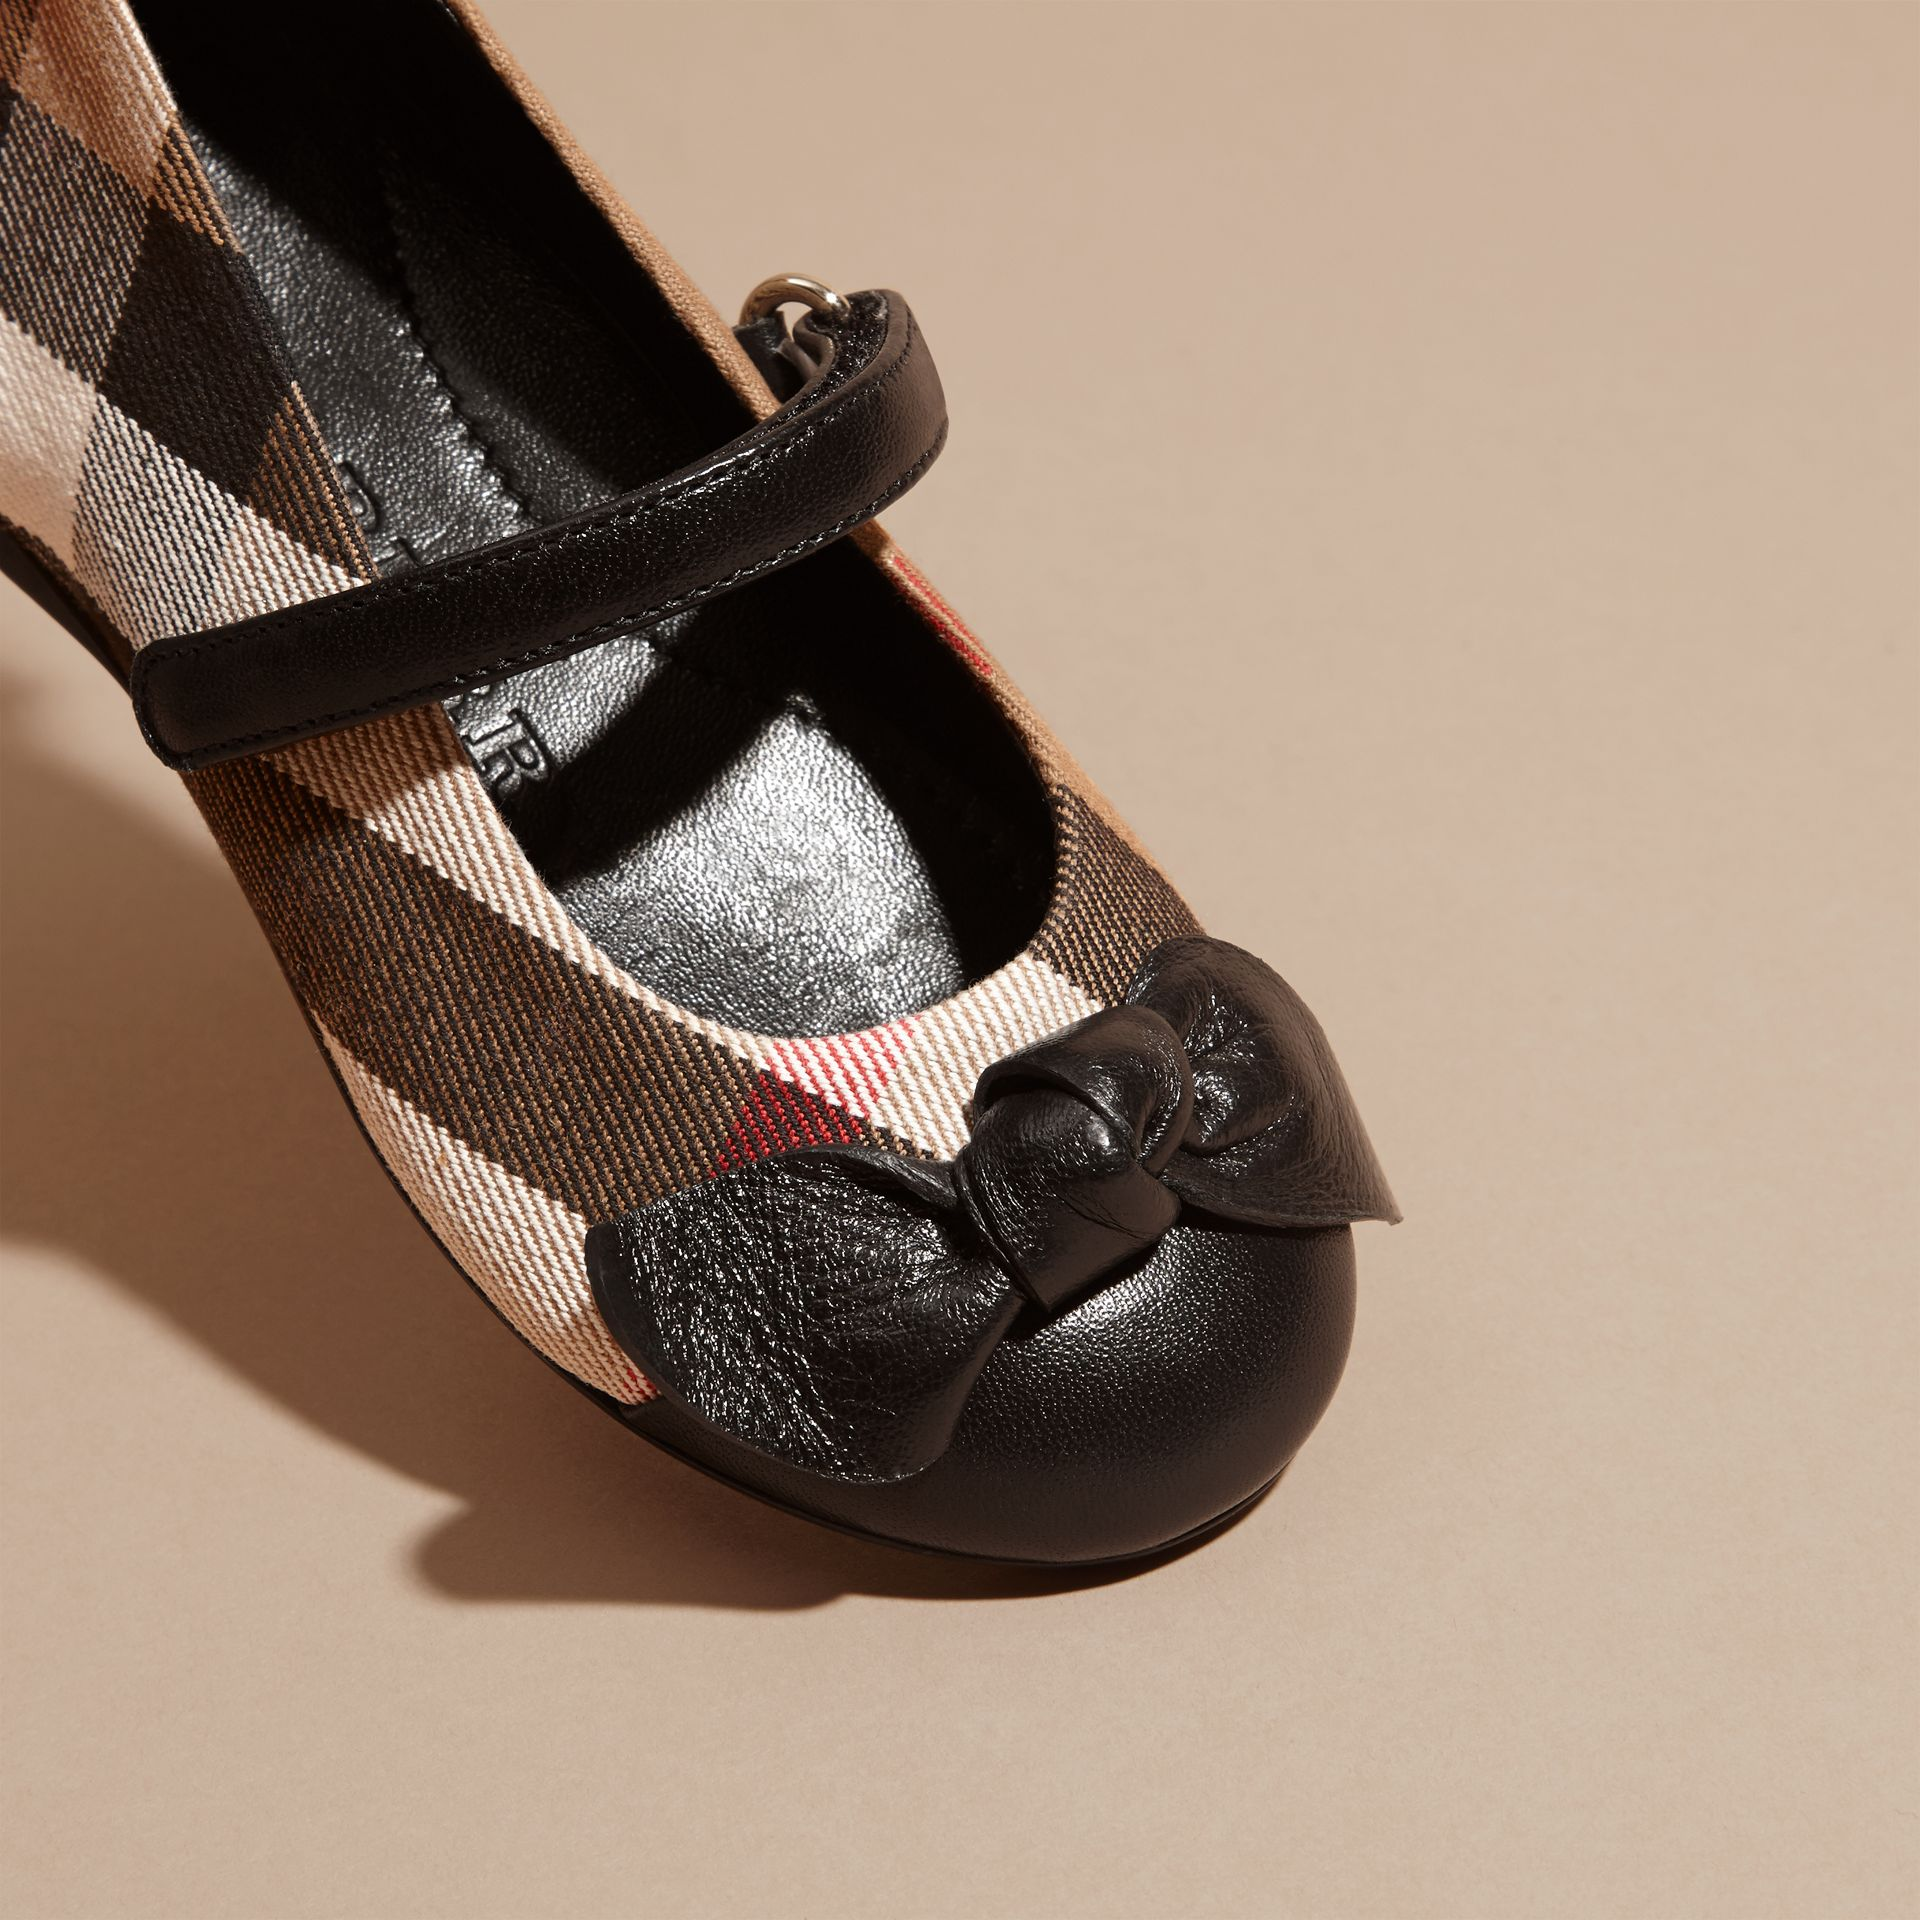 Noir Ballerines en cuir et coton House check Noir - photo de la galerie 2